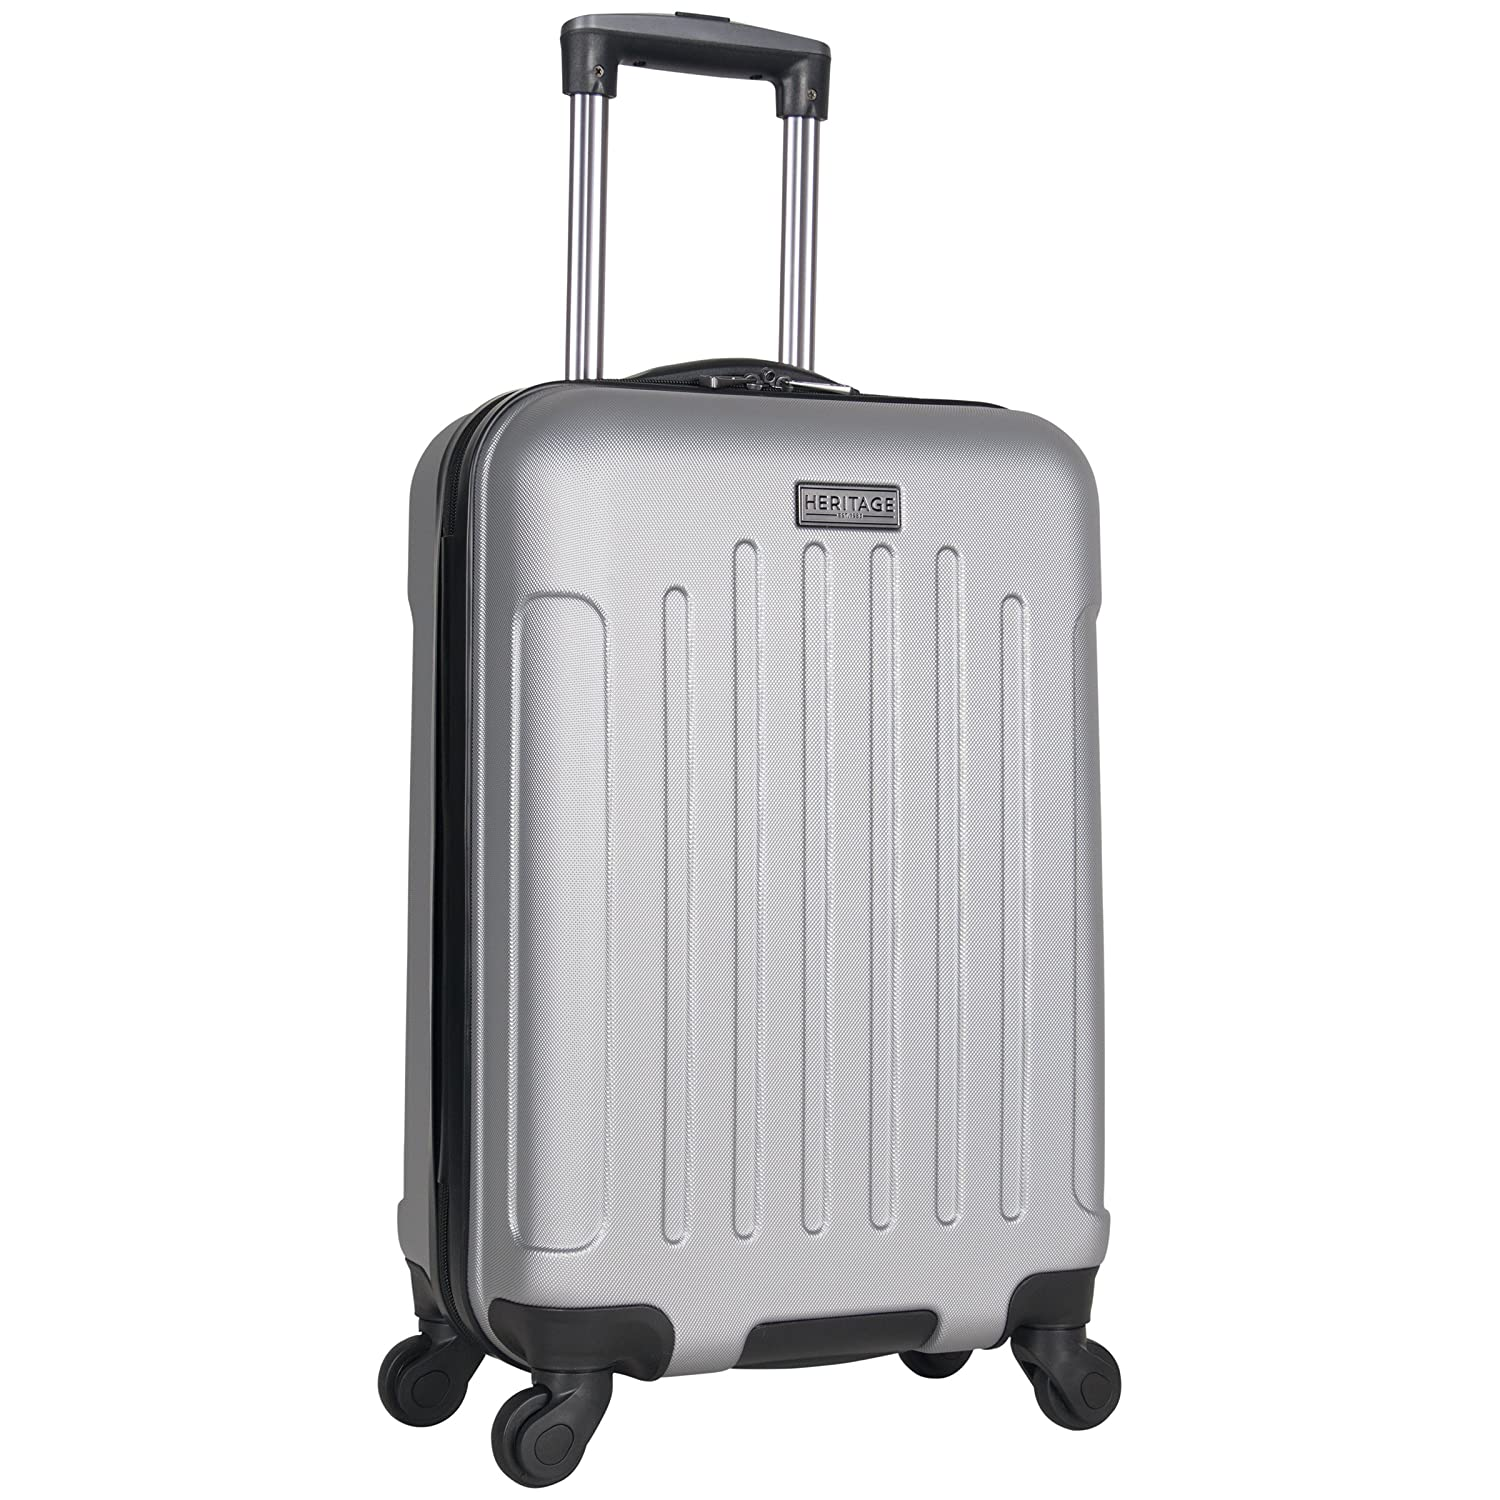 Heritage Travelware Lincoln Park Spinner 3-Piece Set 20 Carry-on 29 Rose Gold 25 29 882622RG 25